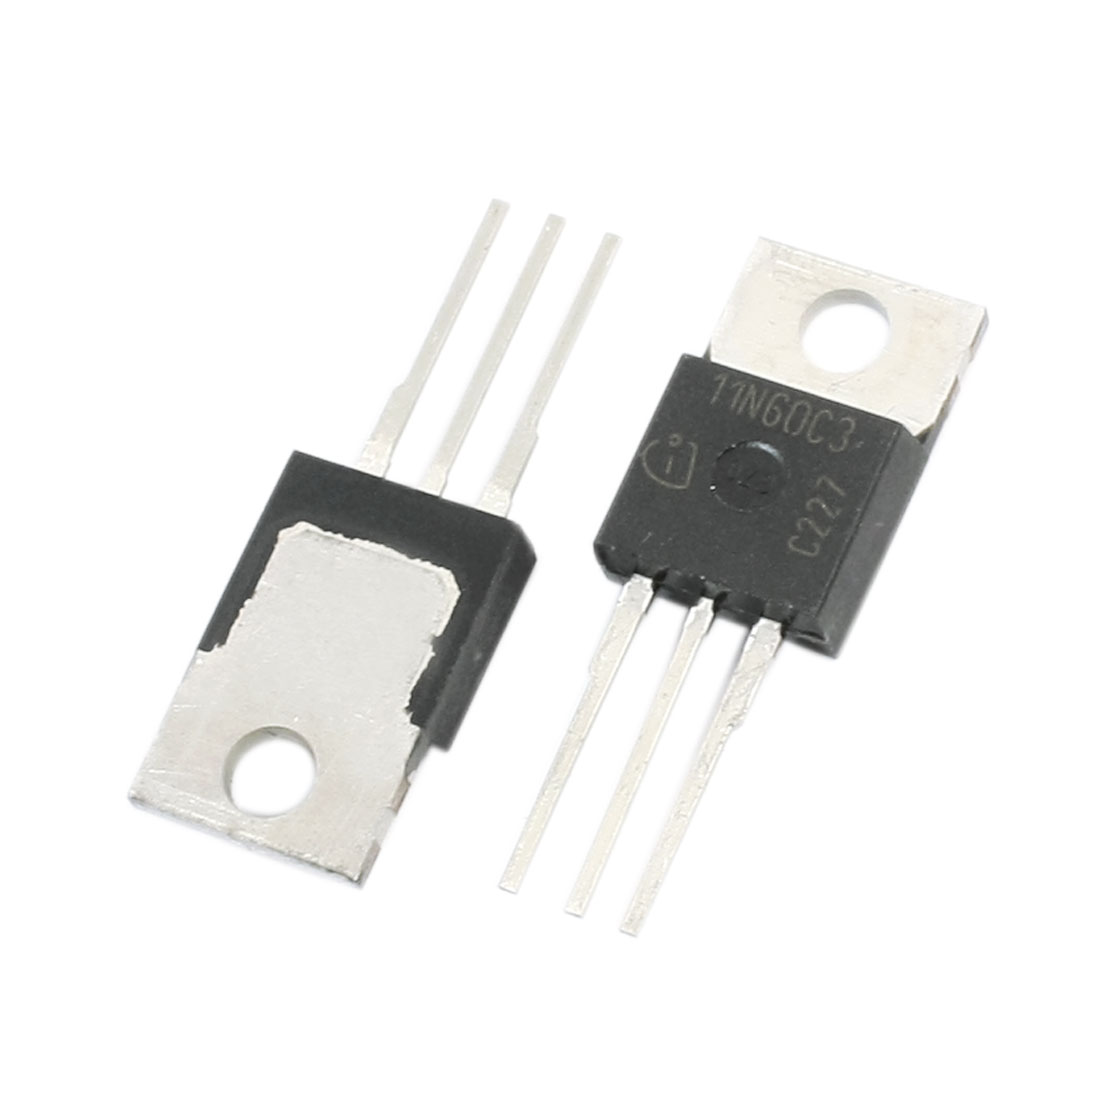 2Pcs SPP11N60C3 650V 11A N Channel Cool MOS Field Effect Power Transistor